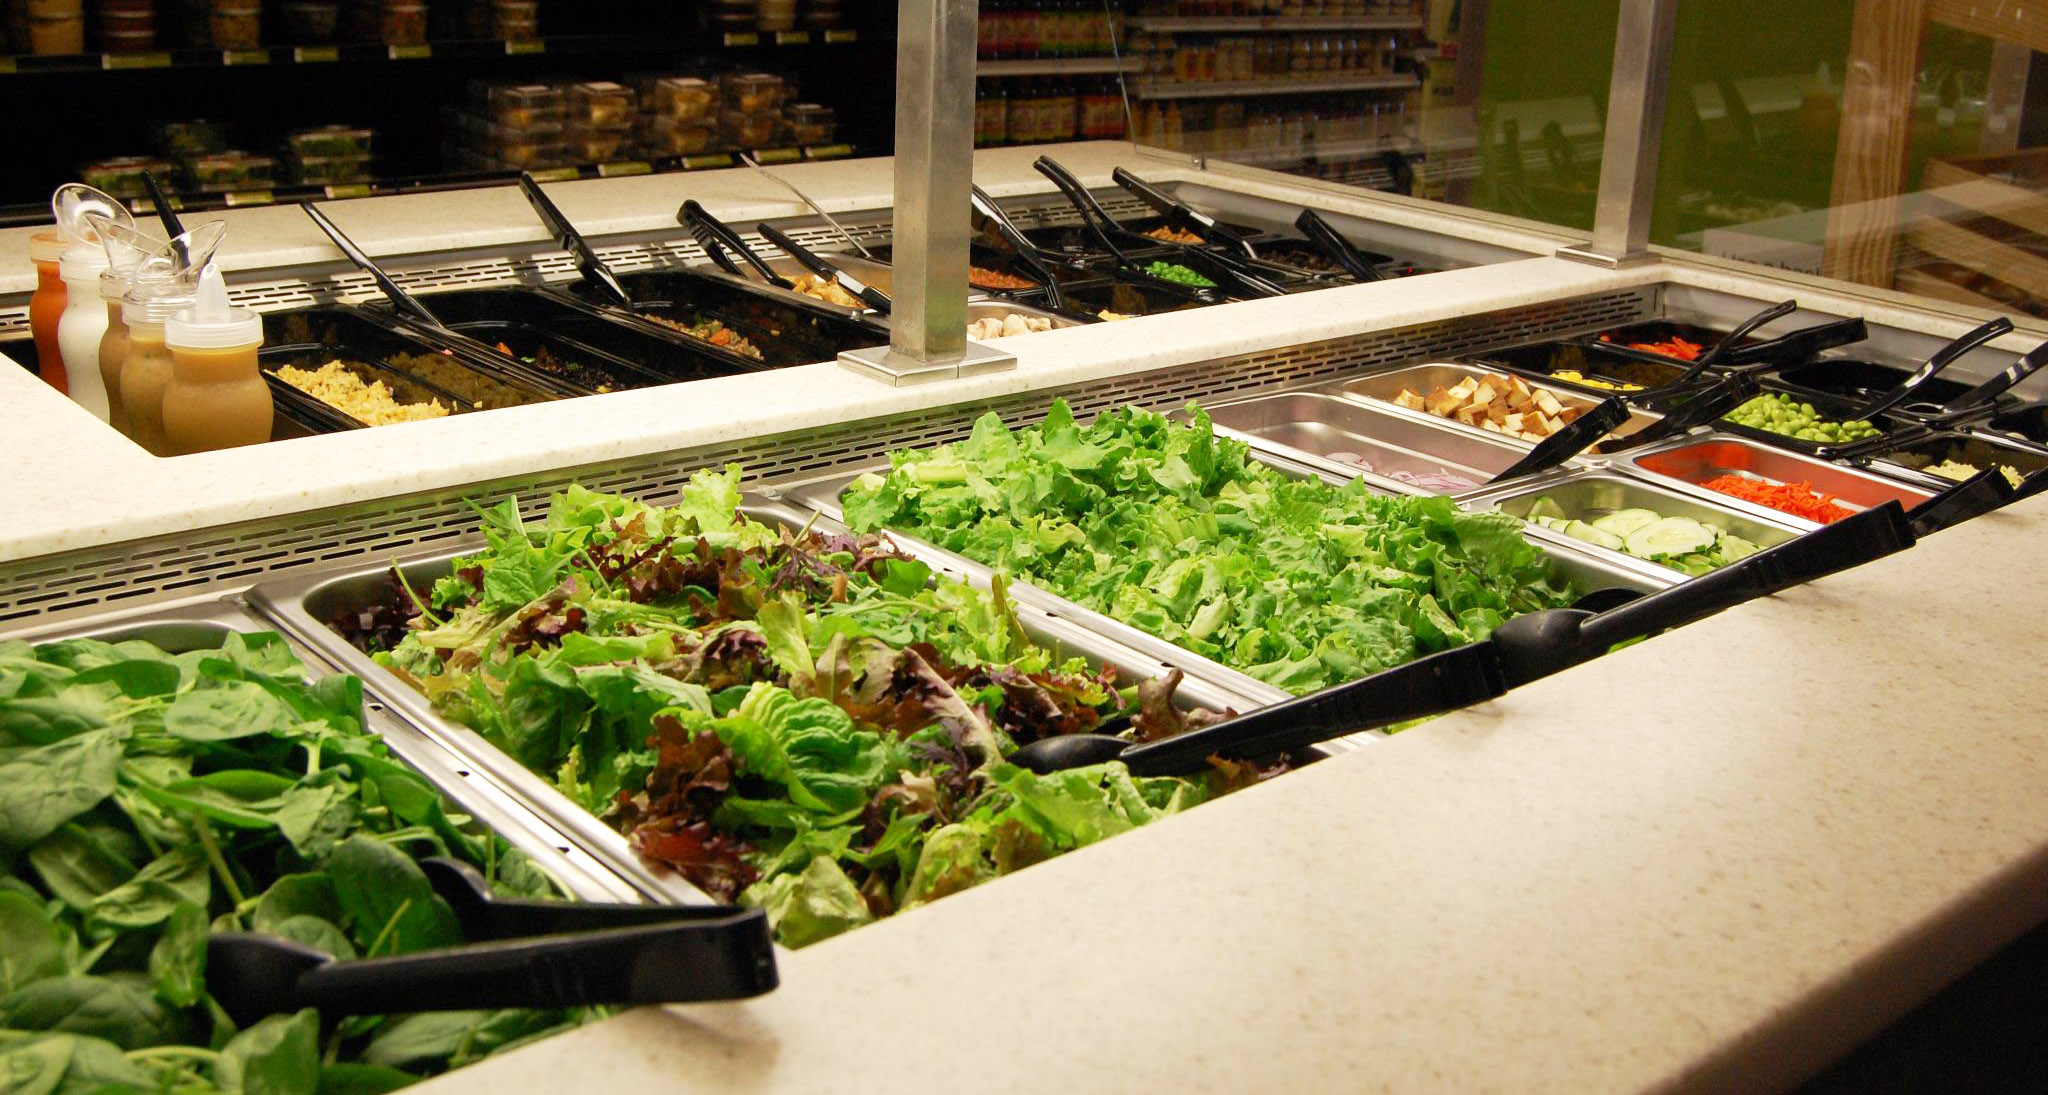 Man Sprays Poison On Produce At Grocery Stores